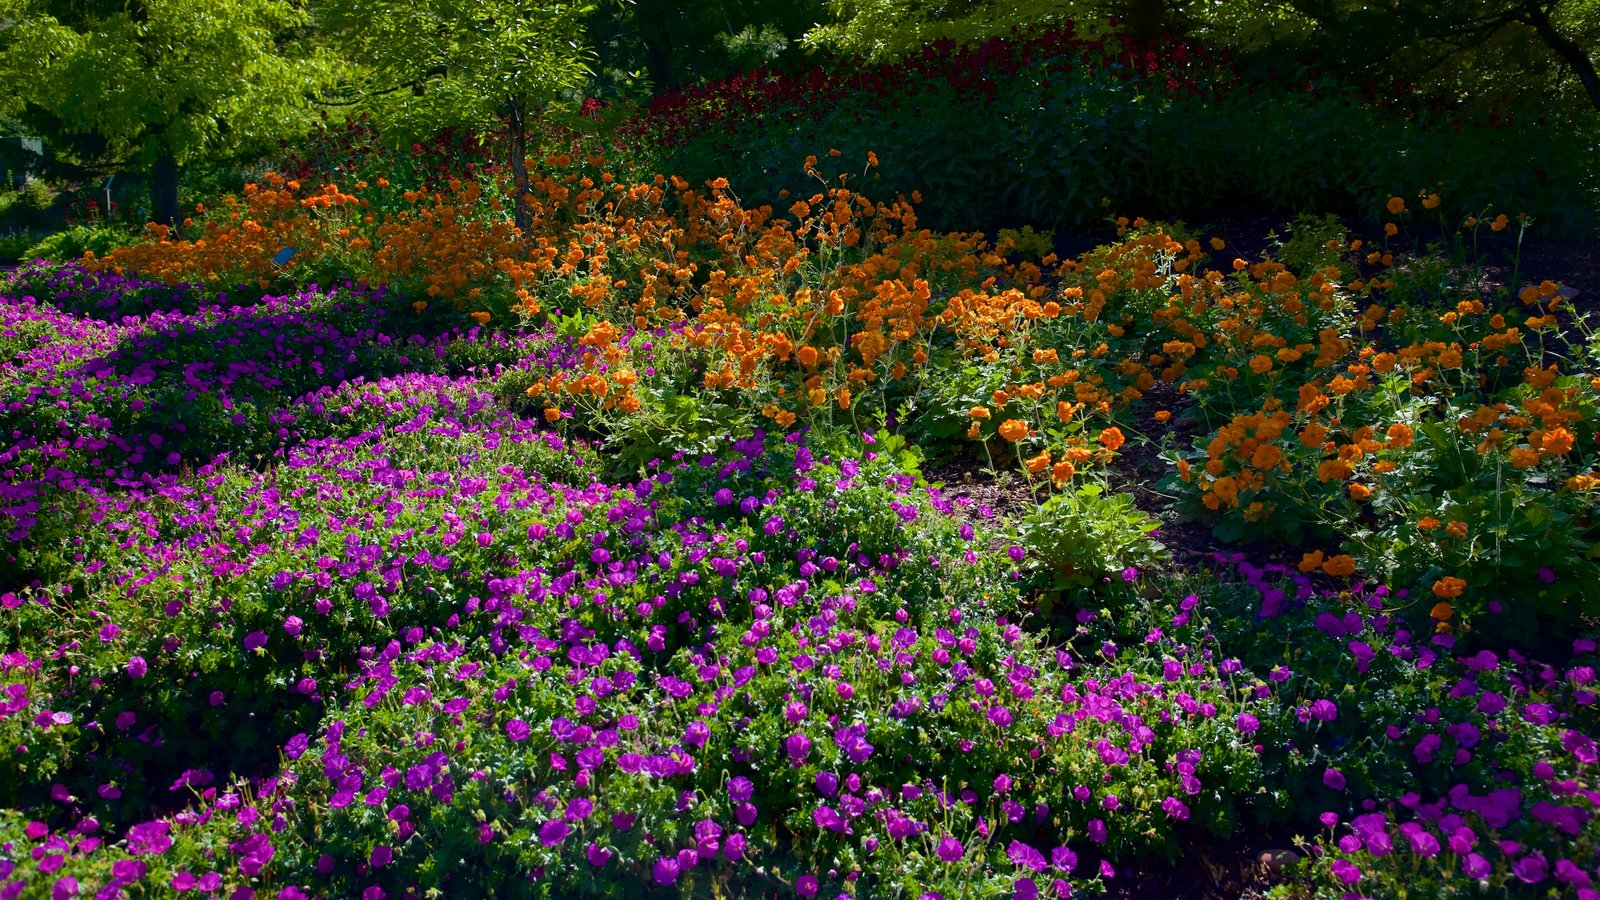 Red Butte Garden and Arboreteum showing flowers